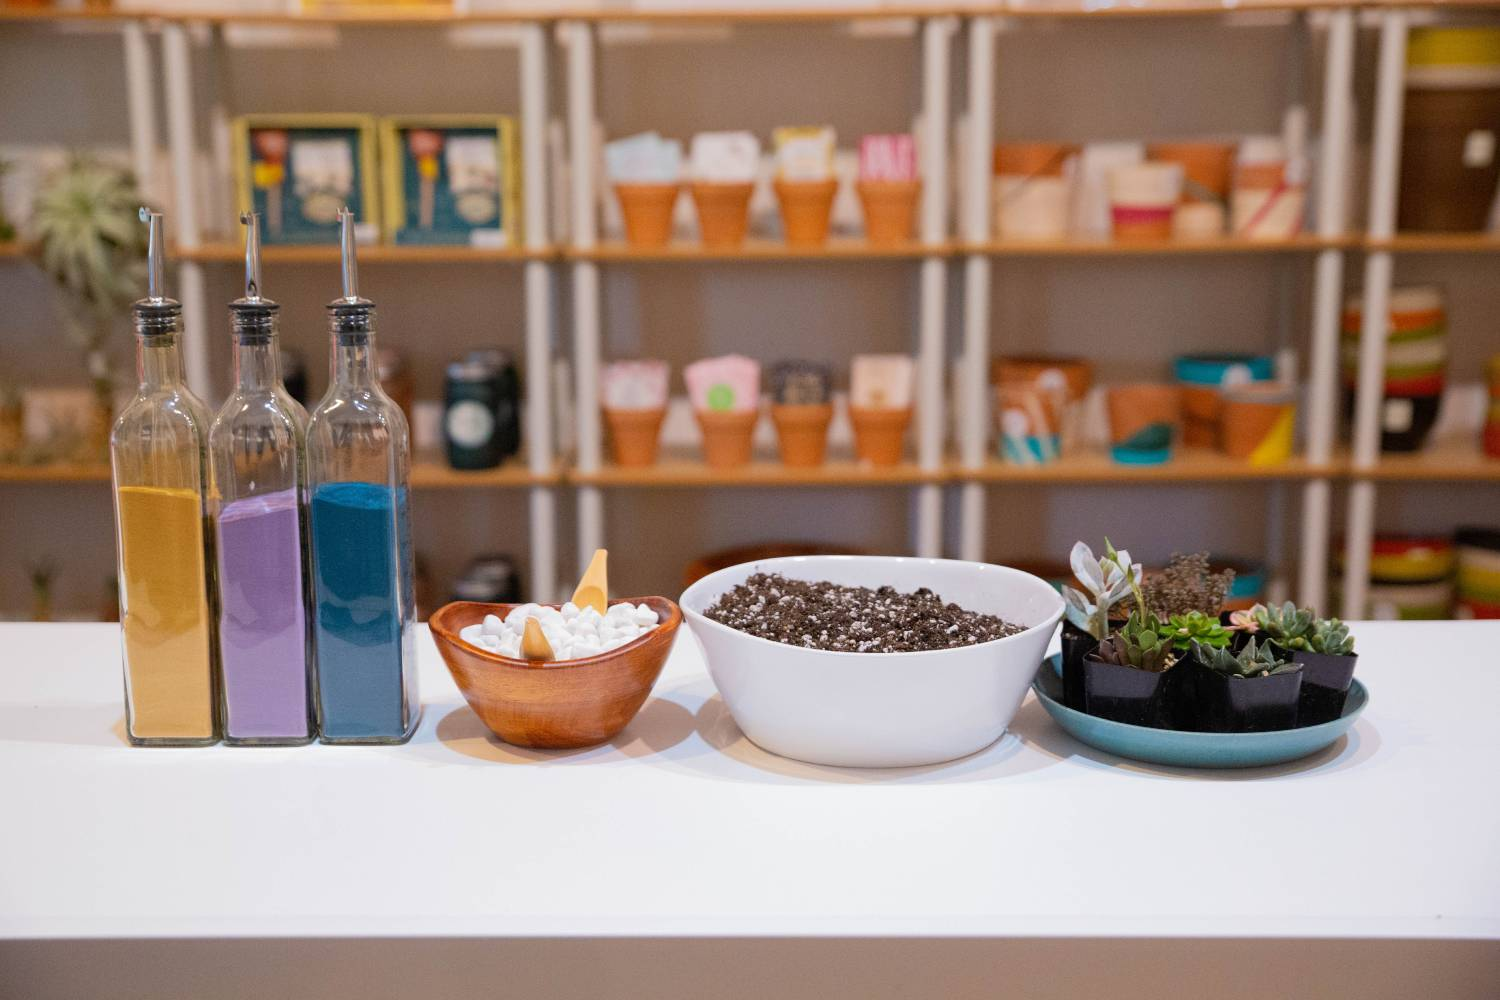 On a white table sits a tray of succulents, a bowl of potting mix, a bowl of decorative rocks, and several glass jars of colorful sand. Behind it all are shelves of colorful products for sale.